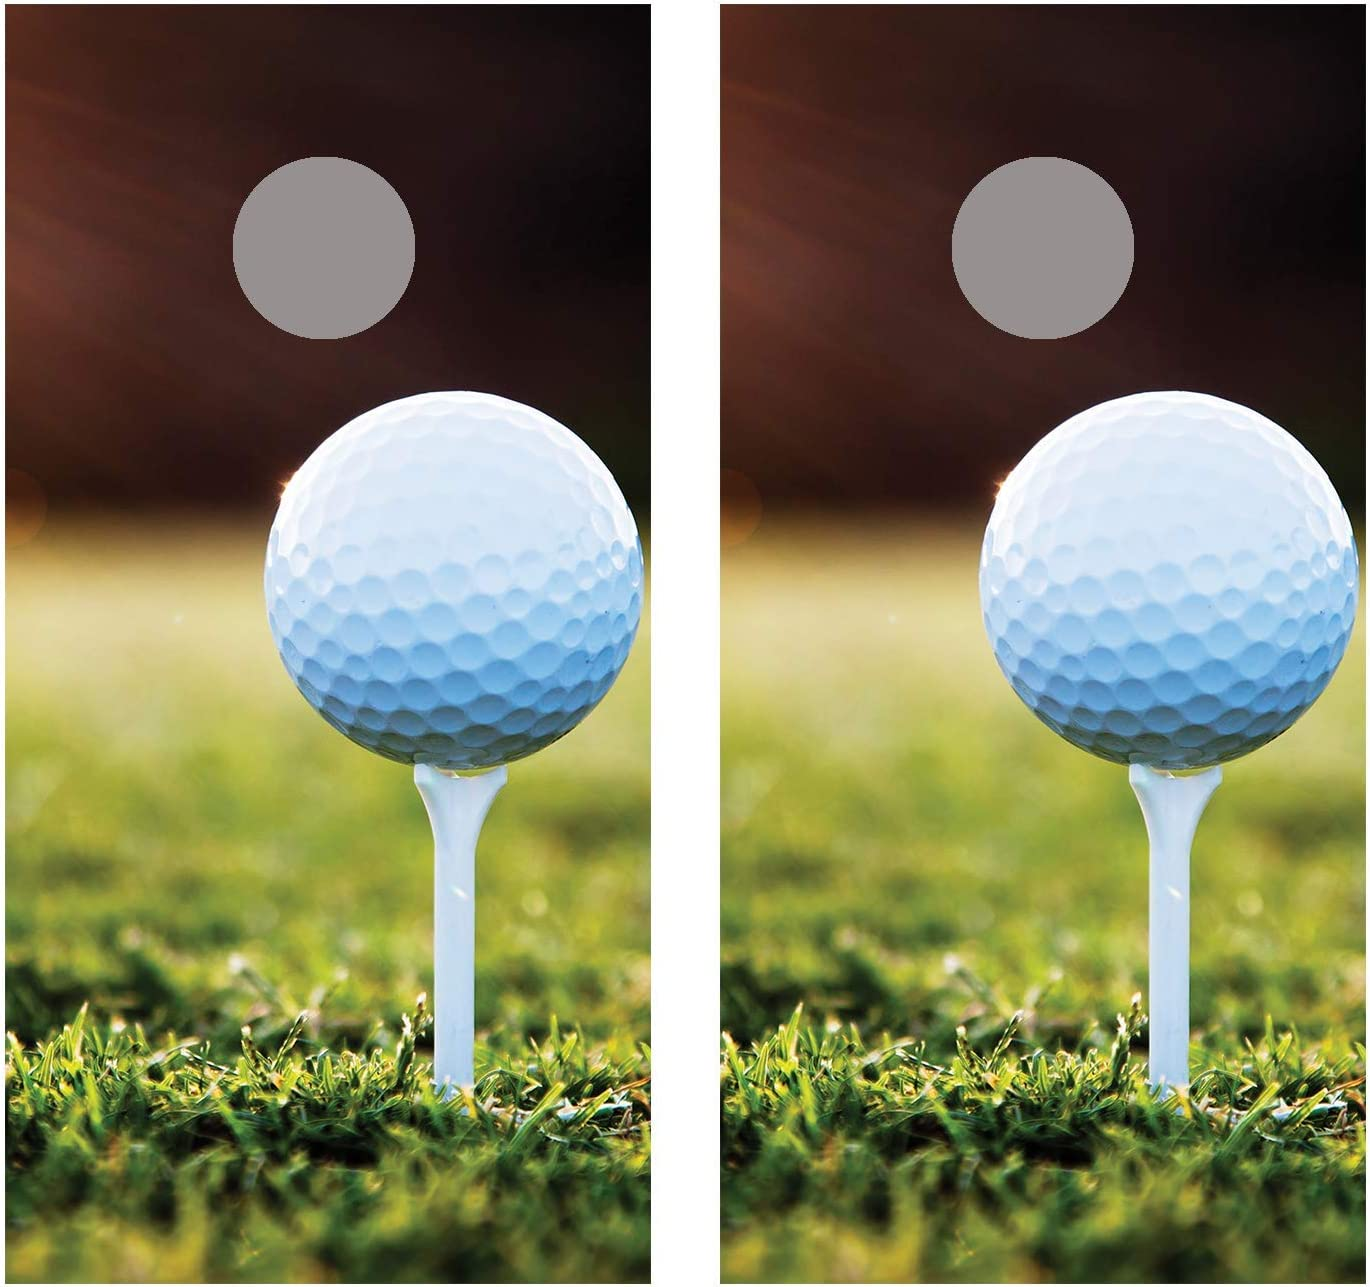 Amazon Com Golf Ball On Tee 2 Cornhole Board Decal Wraps Laminated Sports Outdoors